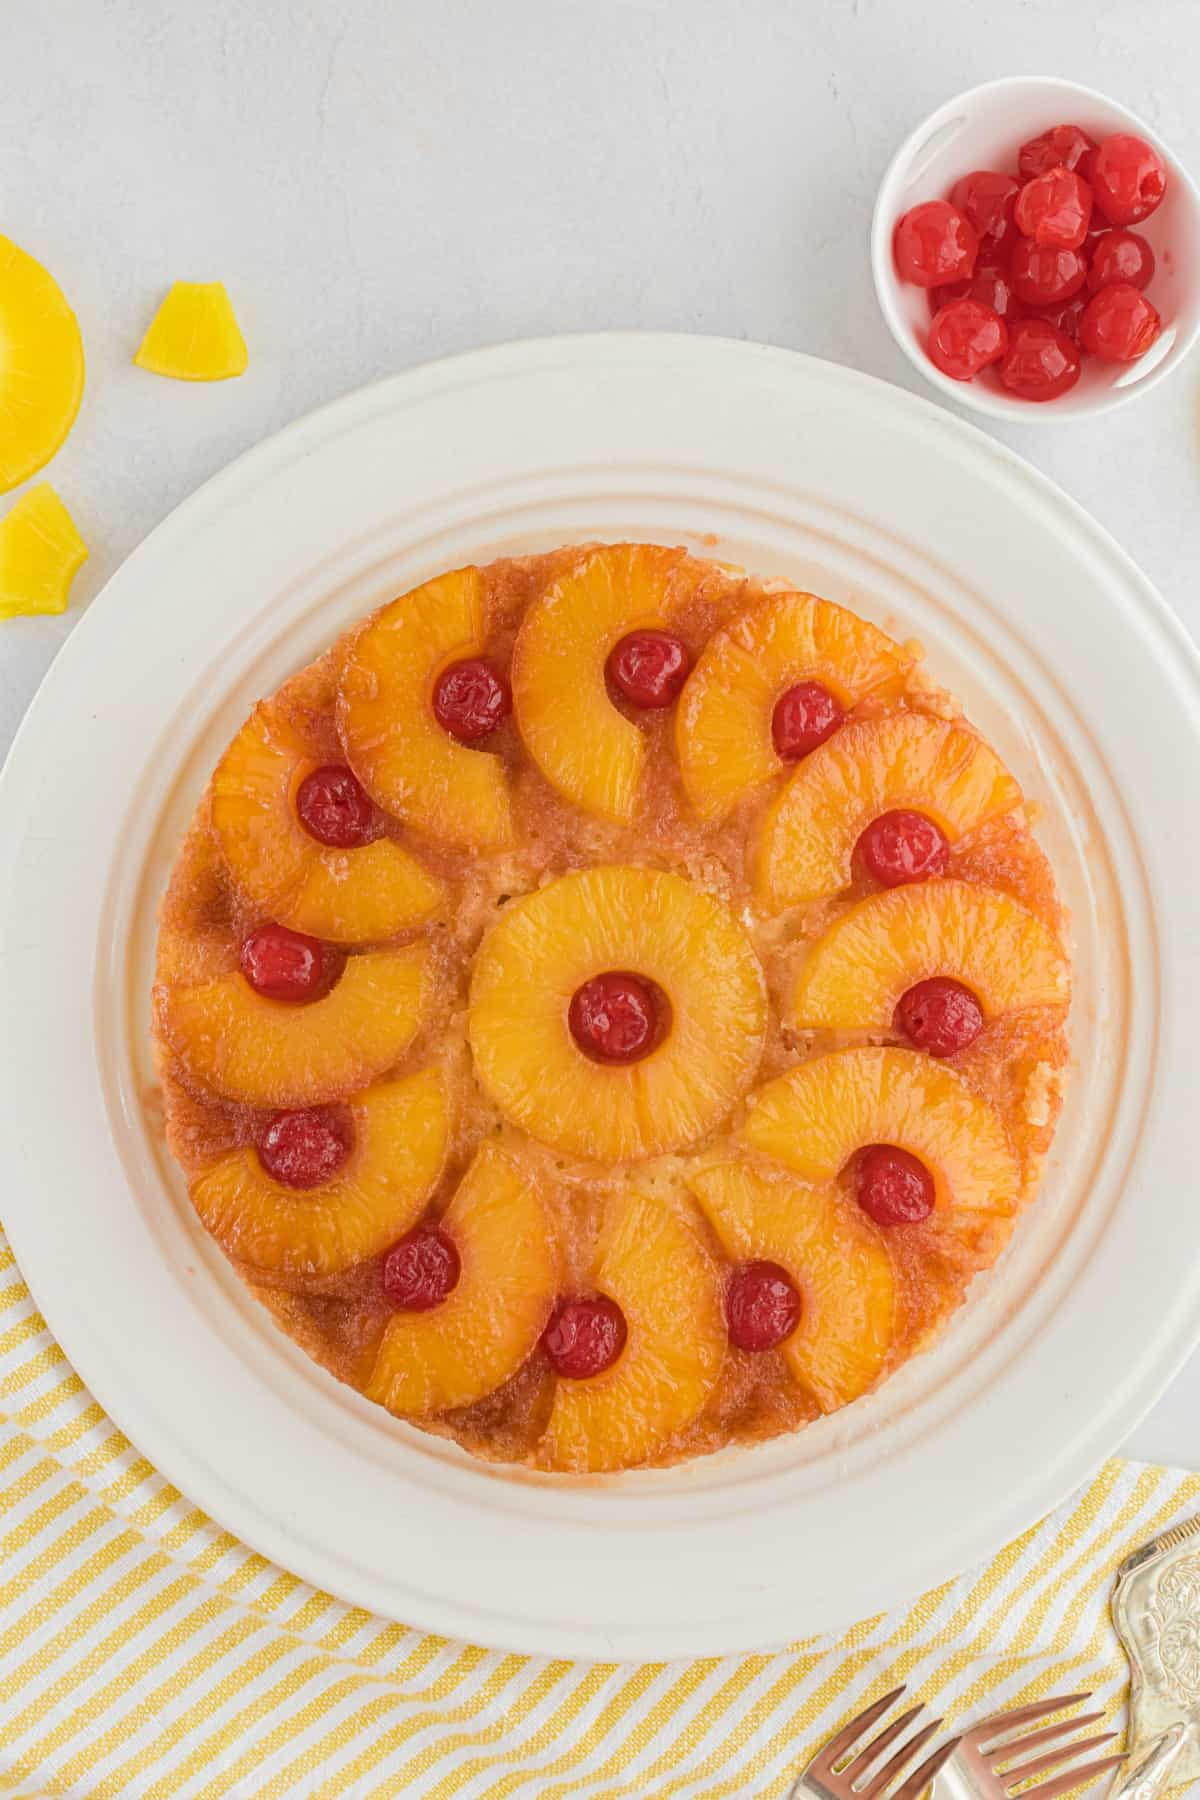 Pineapple upside down cake on a white cake platter with a small bowl of cherries in background.